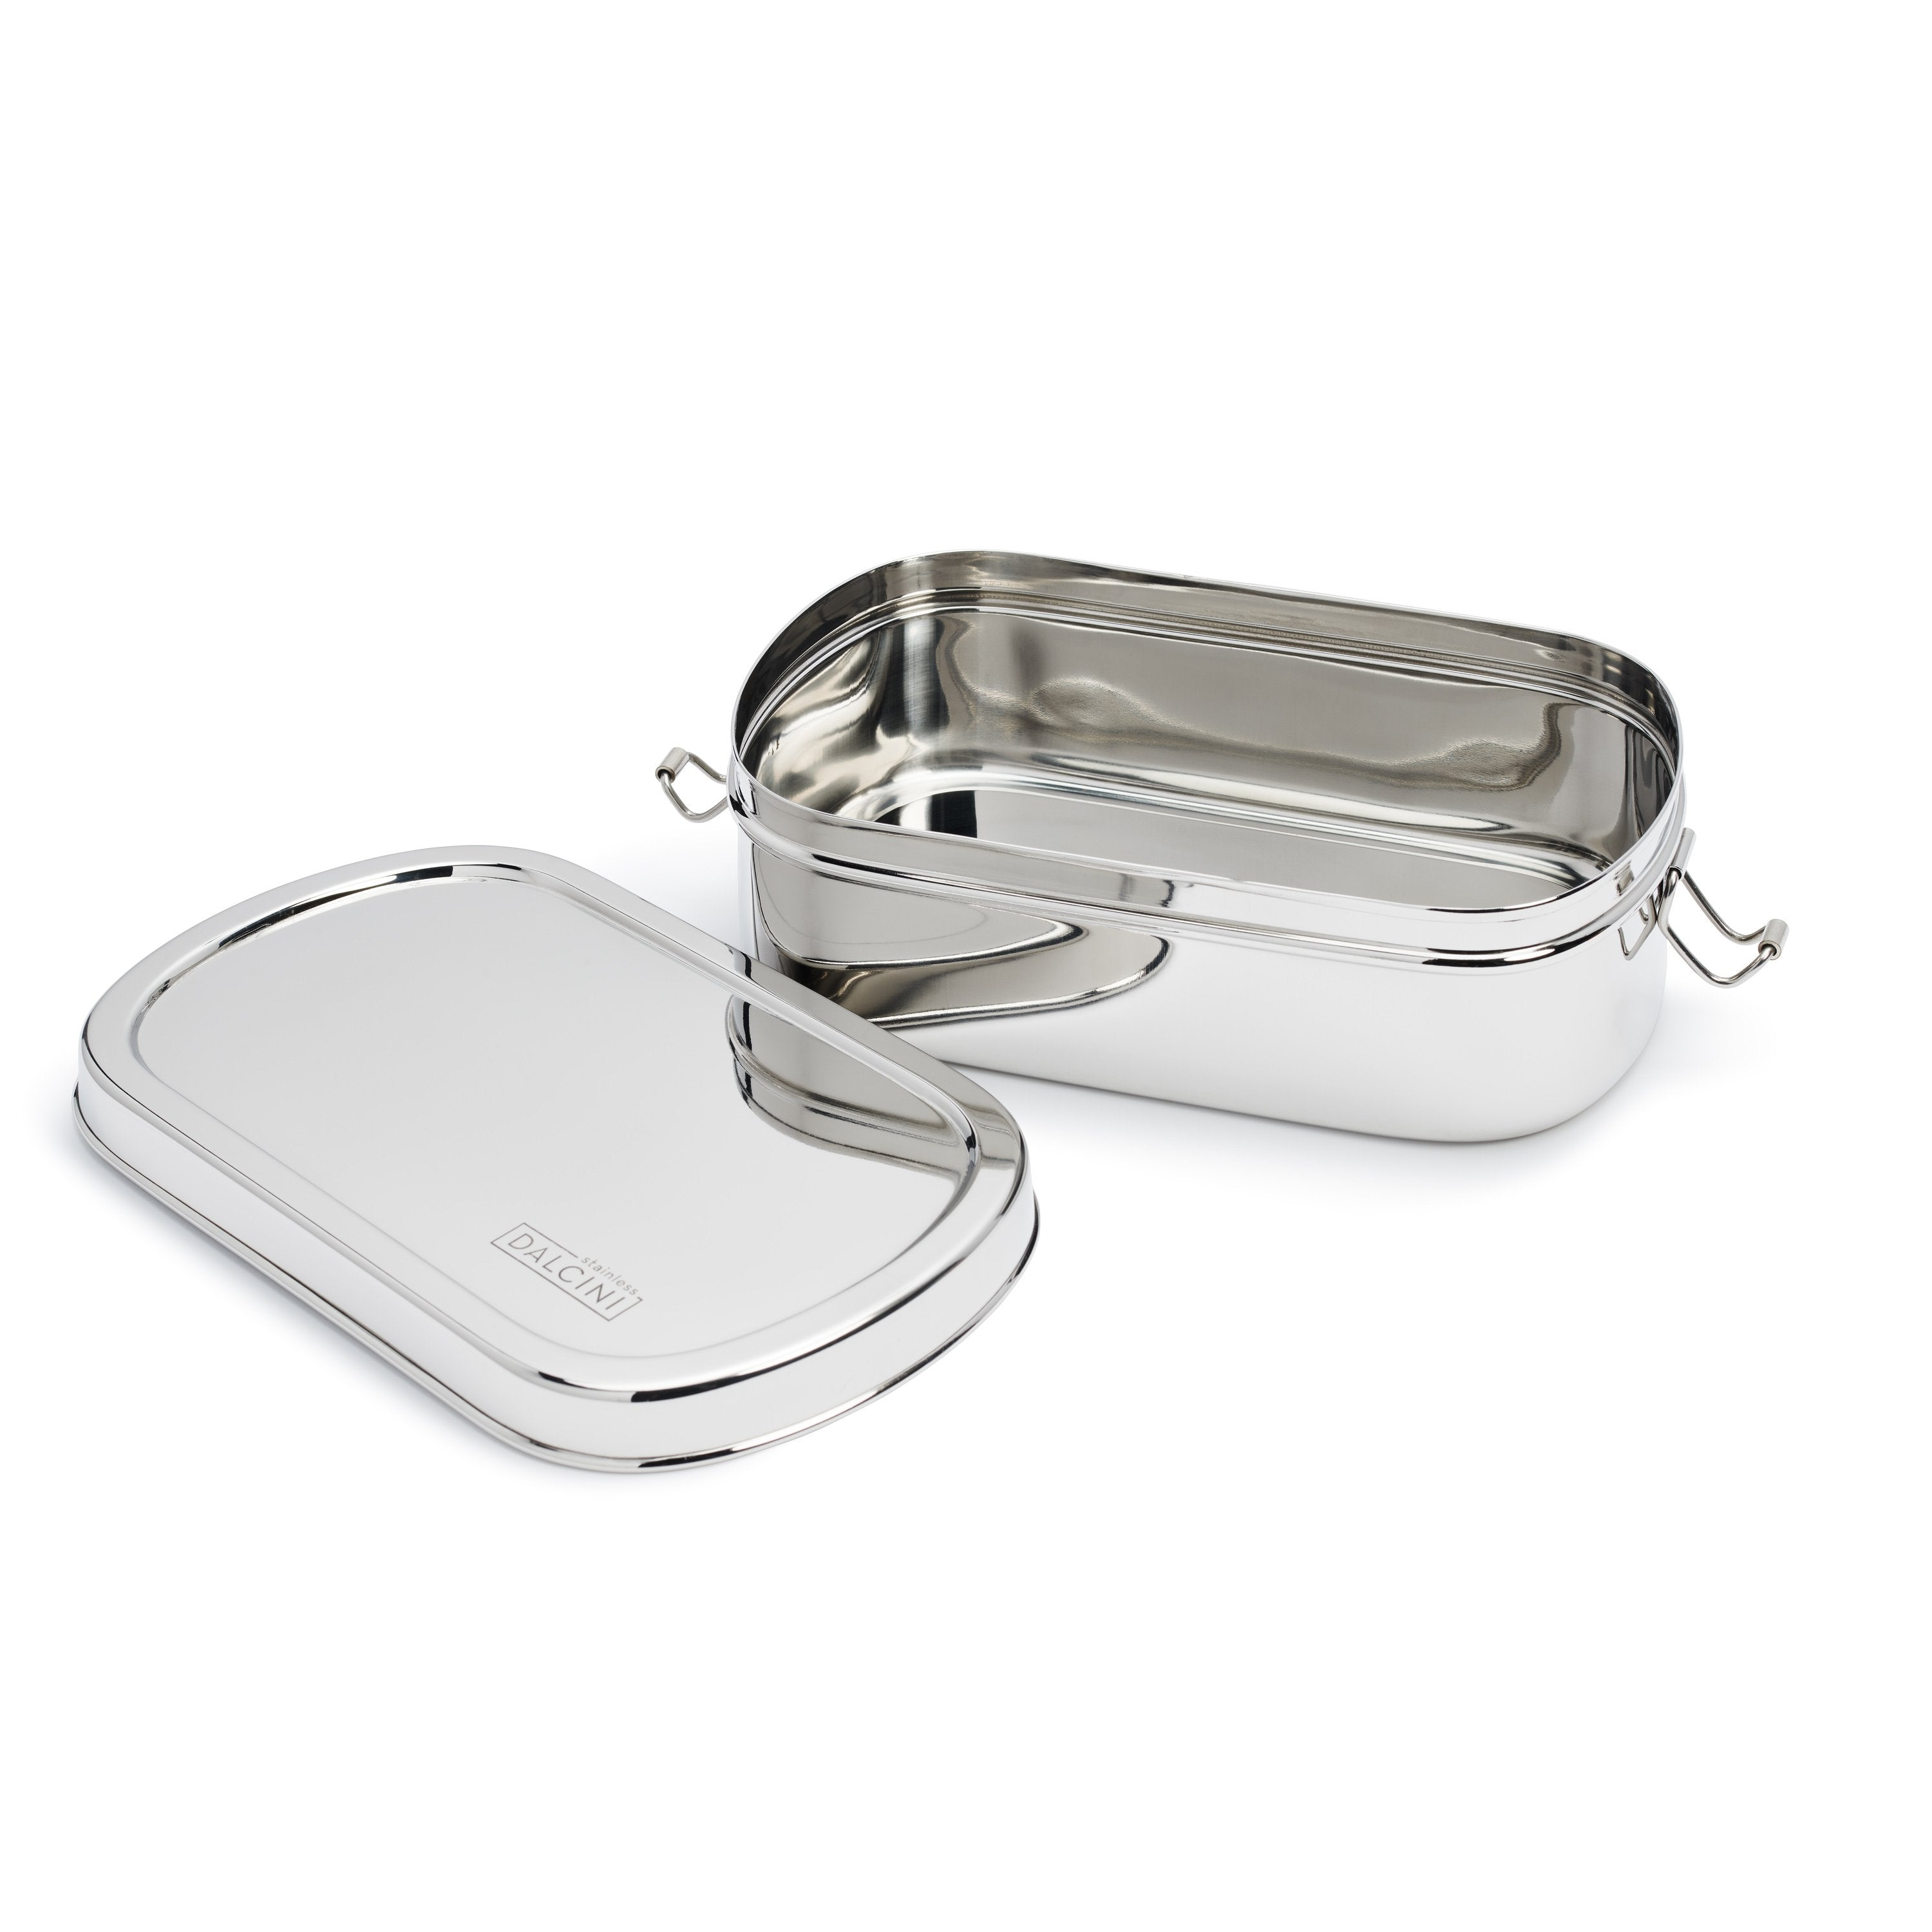 Large Oval with Clips - dalcinistainless